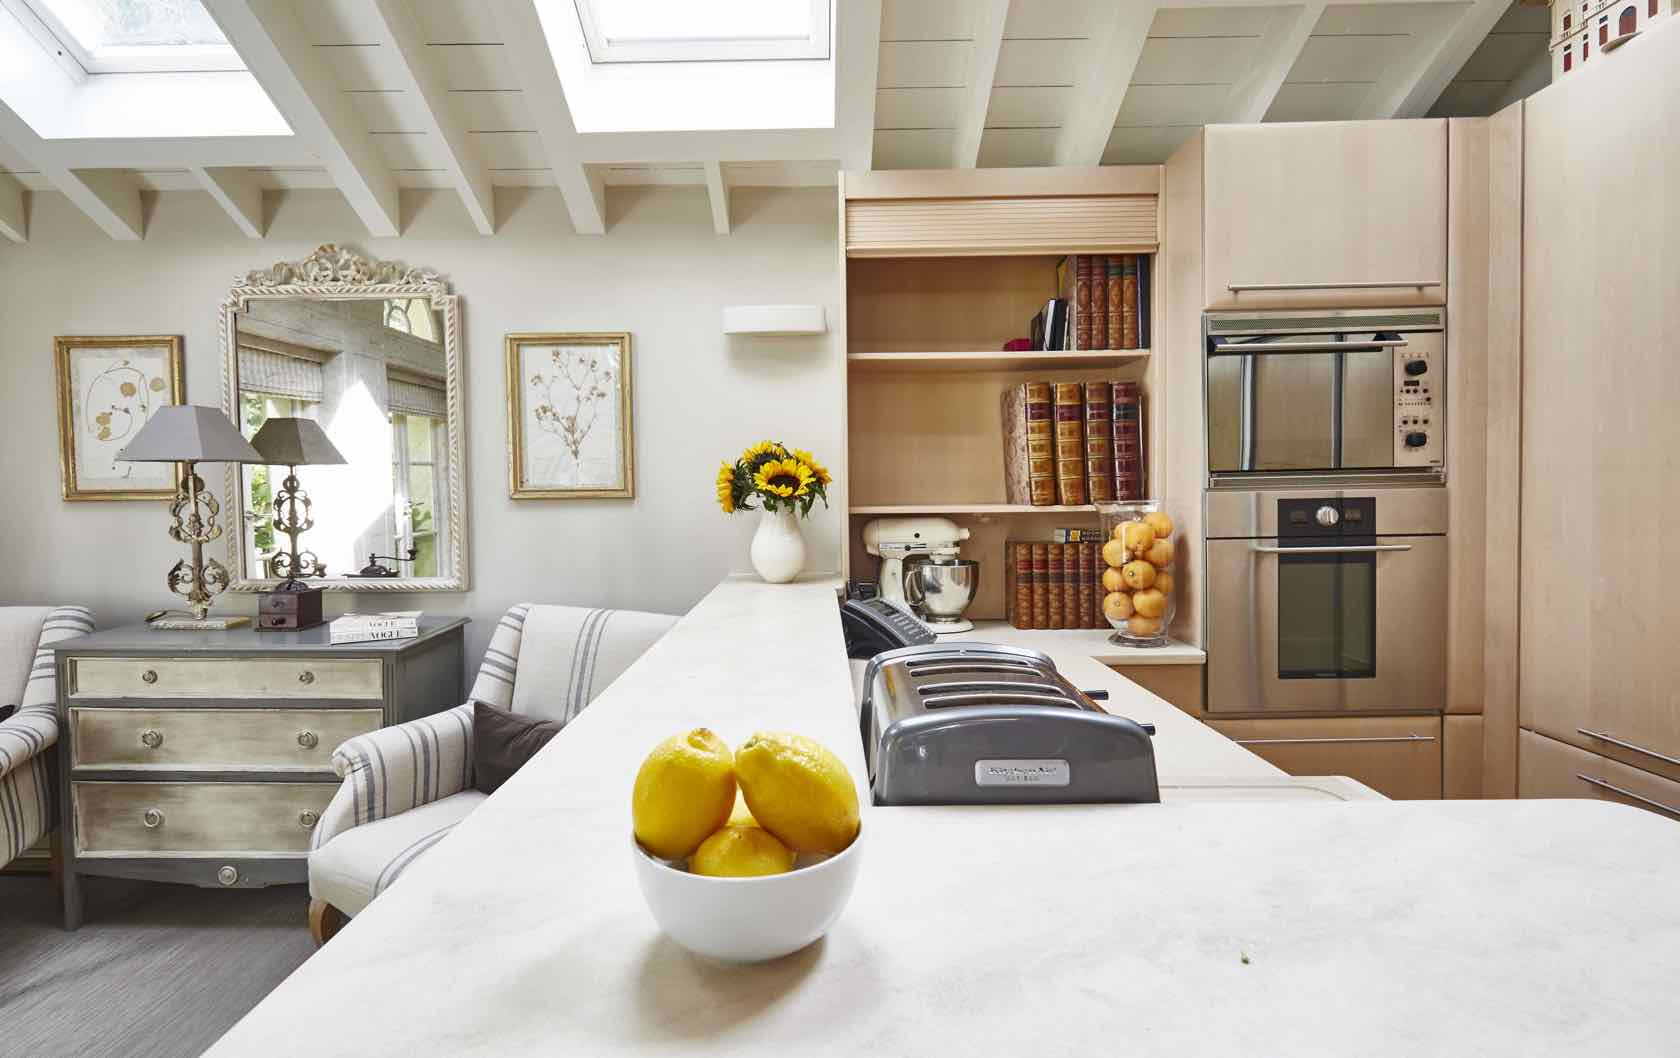 Luxury Kitchens in London: Our Best Apartments for Chefs and Gourmands